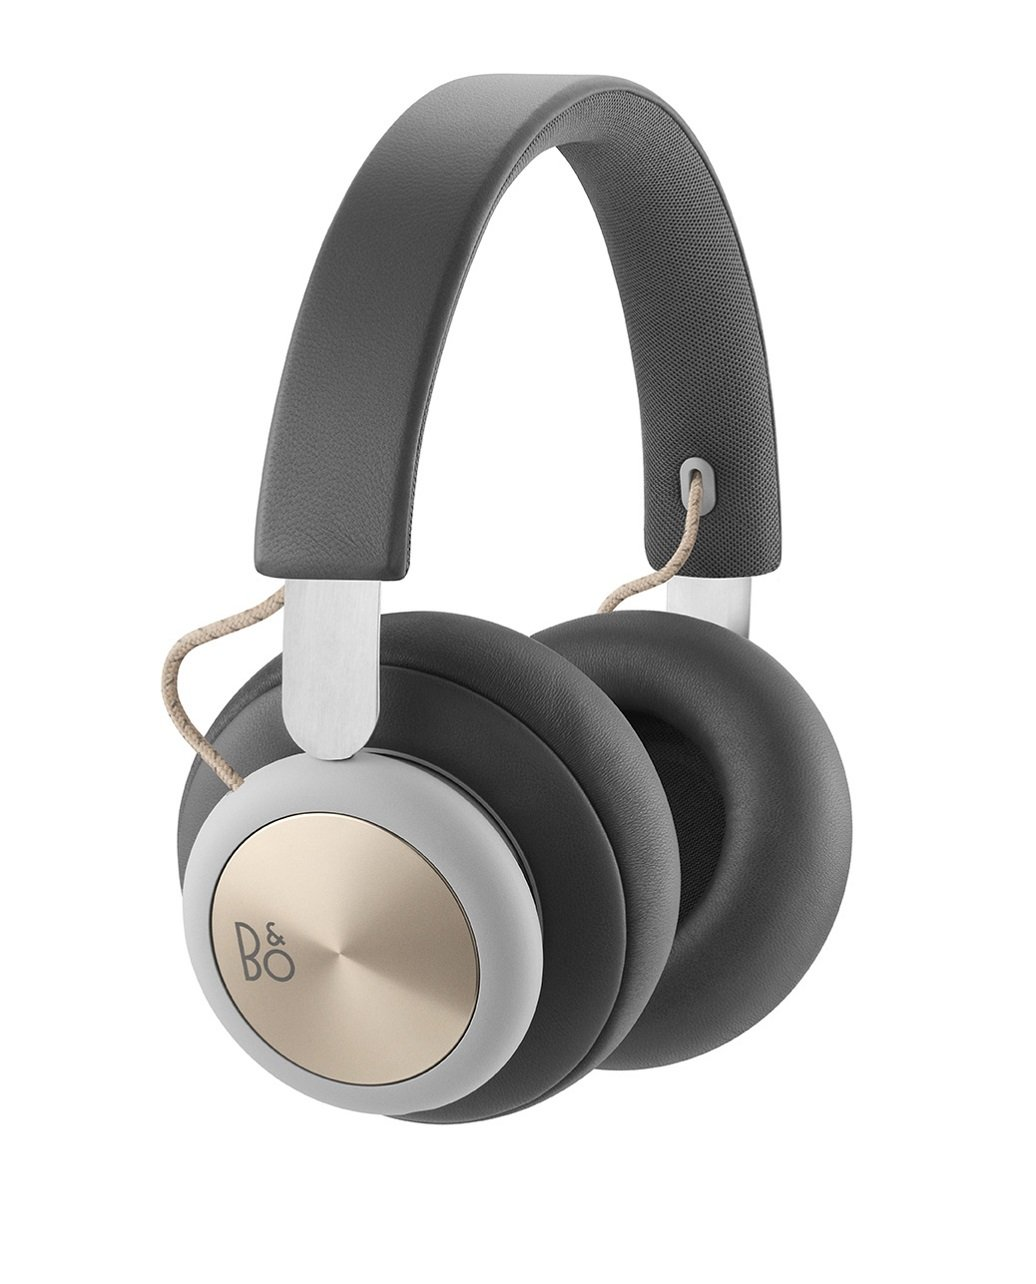 B&O PLAY by Bang & Olufsen Beoplay H4 Wireless Over-Ear Headphones, Bluetooth 4.2 (Charcoal Gray) by B&O PLAY by Bang & Olufsen